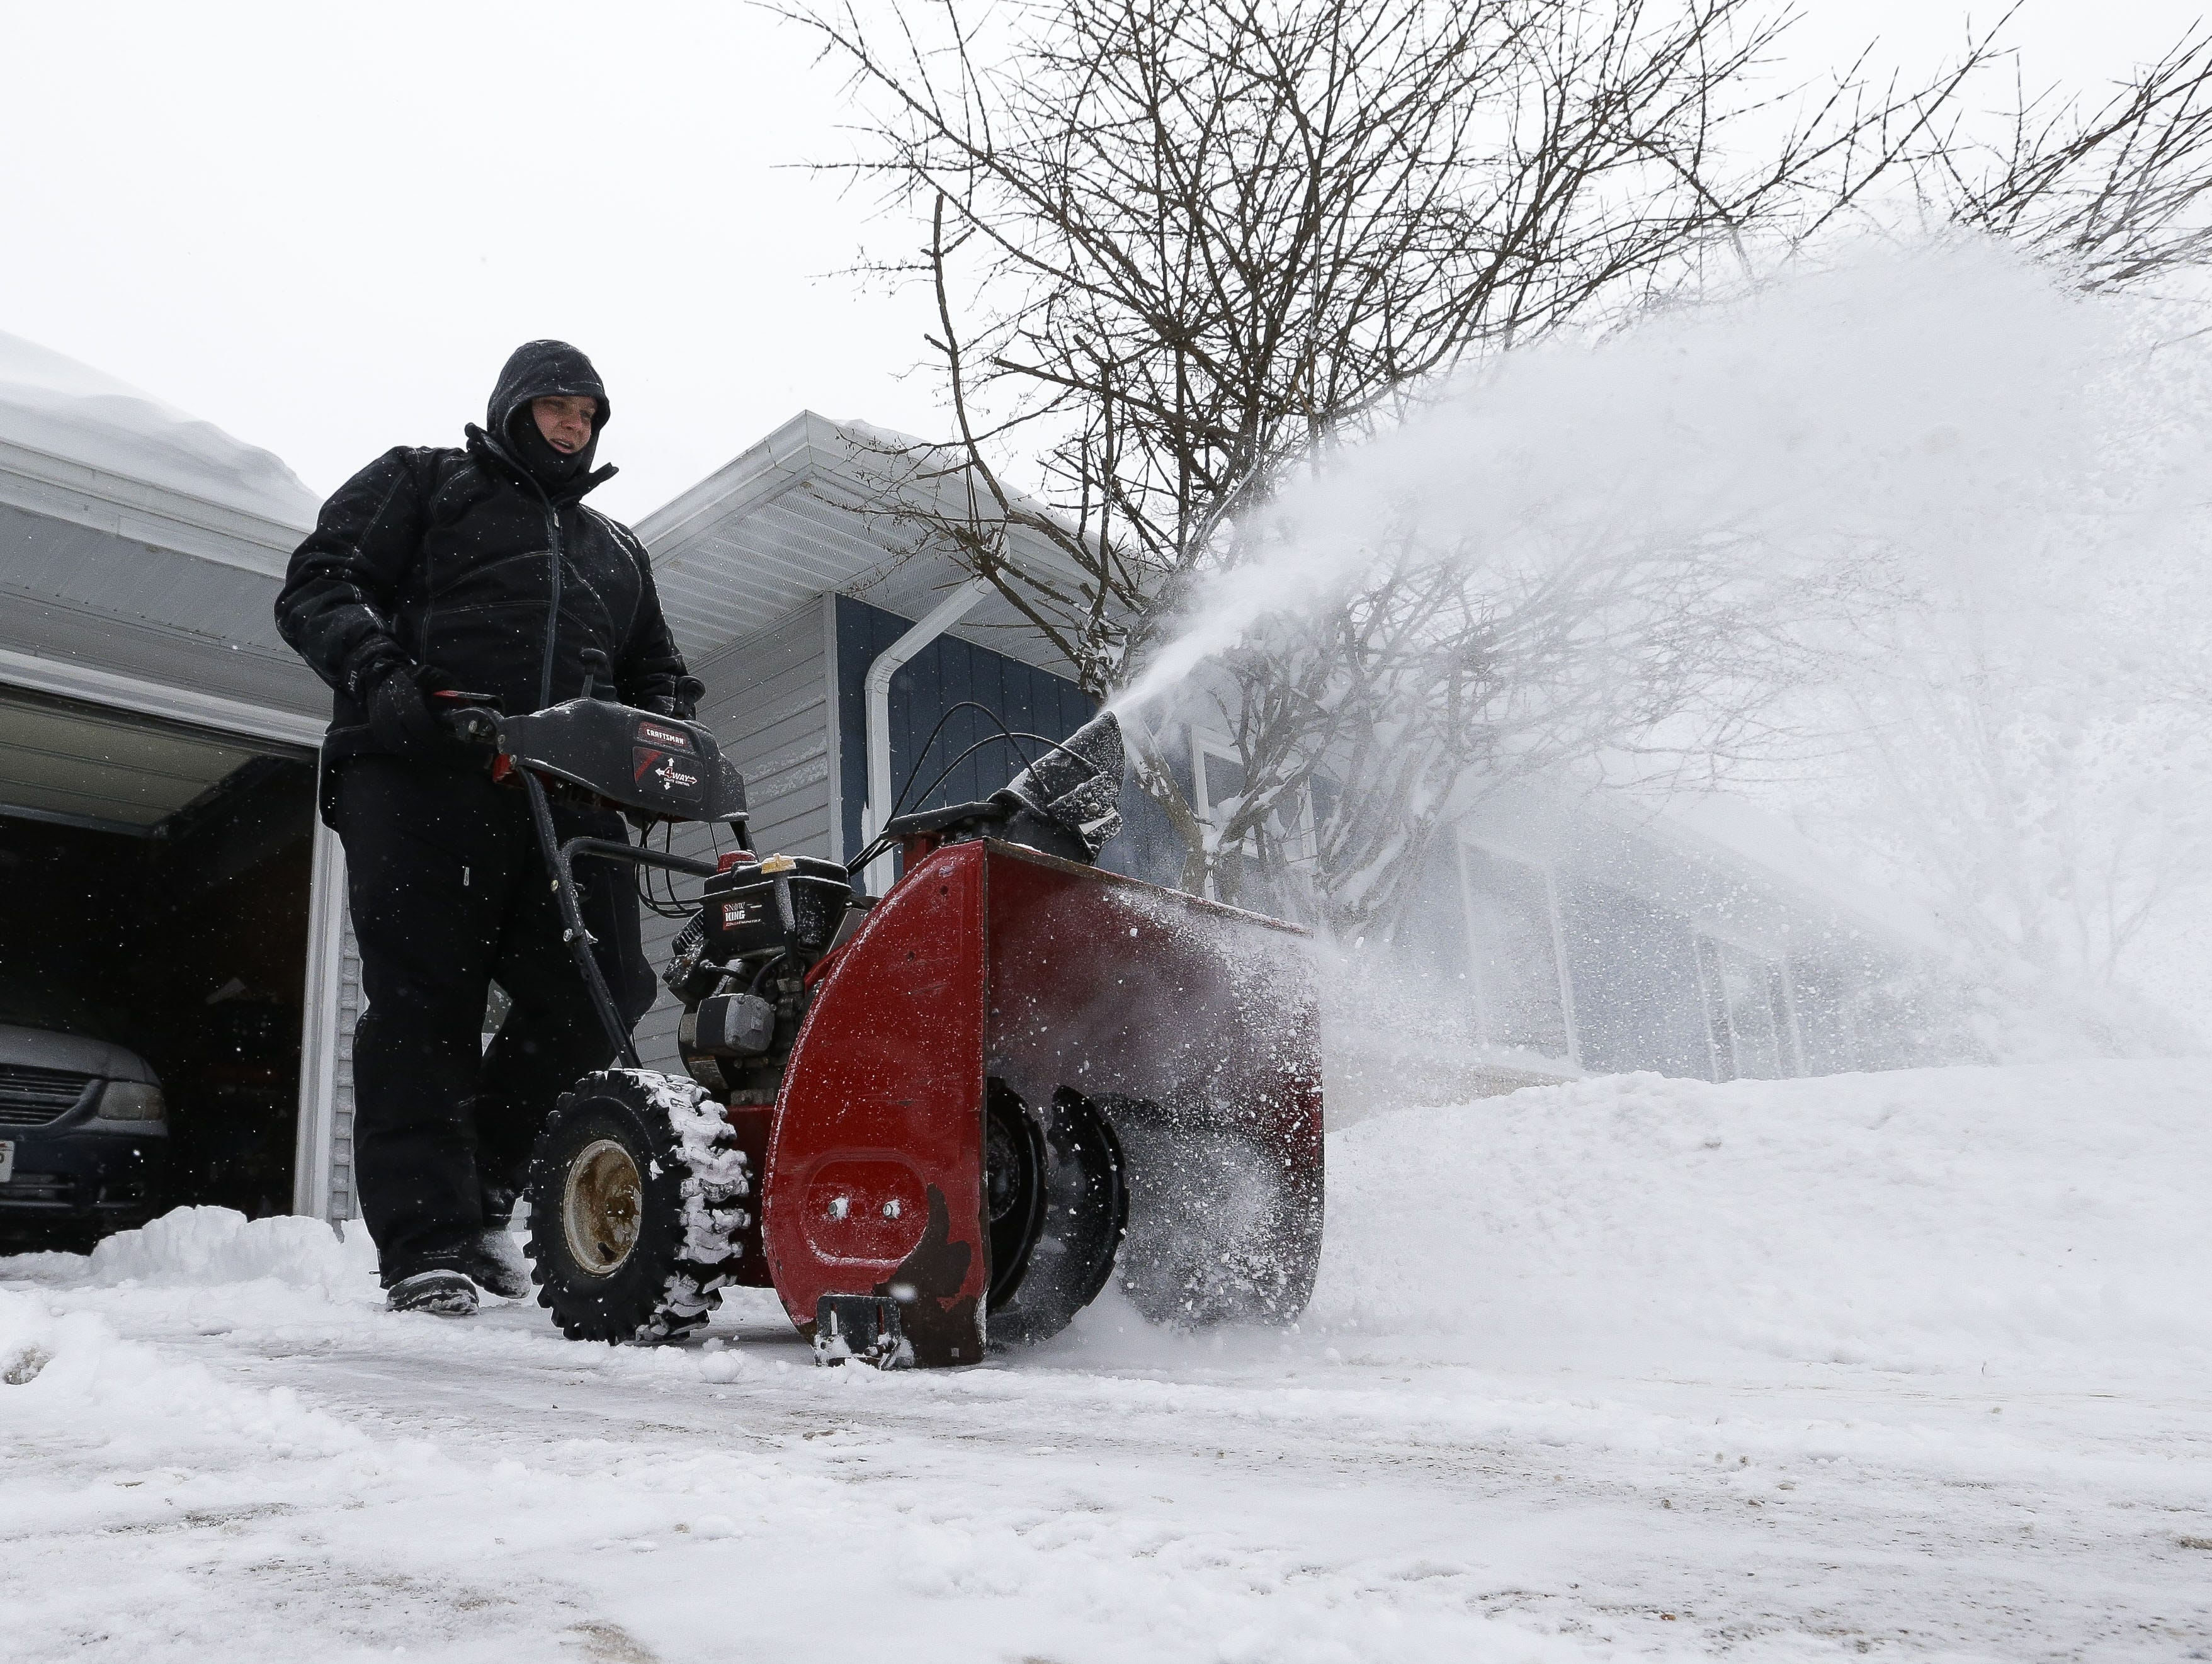 Jake Mortimer clears his driveway on Monday, Jan. 28, 2019, in Stevens Point, Wis. A winter storm rolled through Wisconsin on Sunday and Monday, marking the first major snowfall of the season.